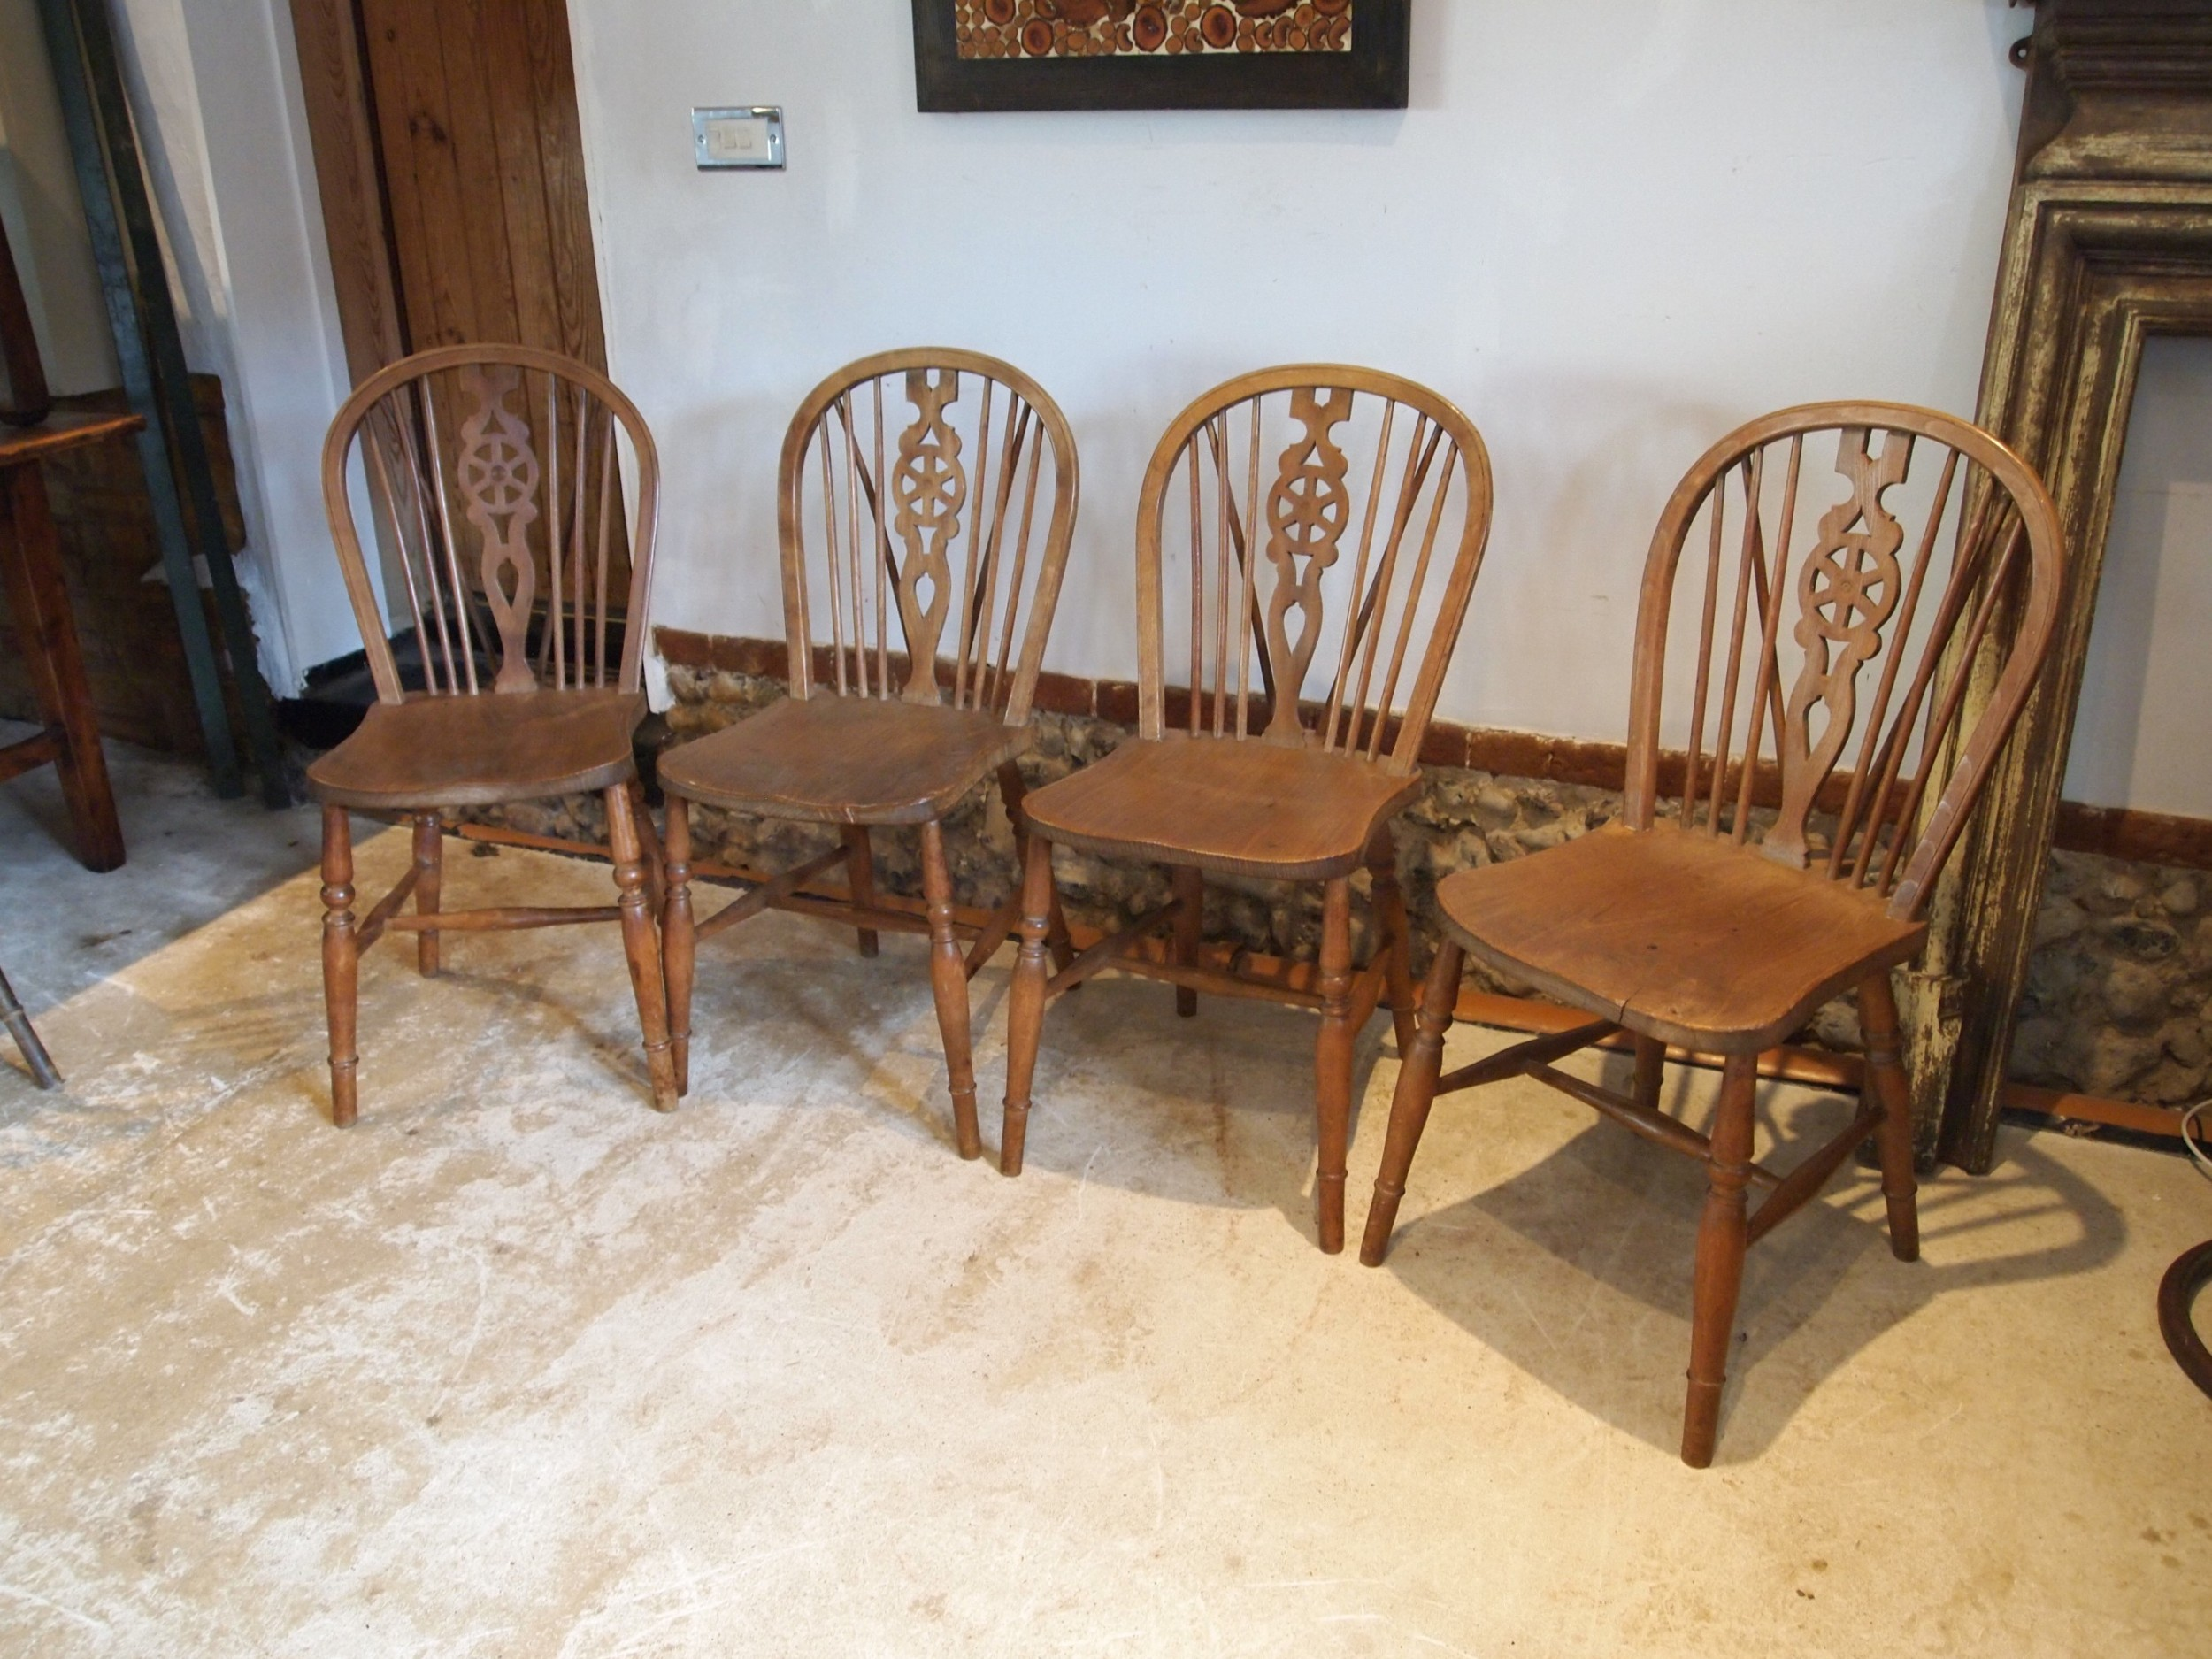 chairs set of 4 victorian windsor wheel back dining chairs c1890